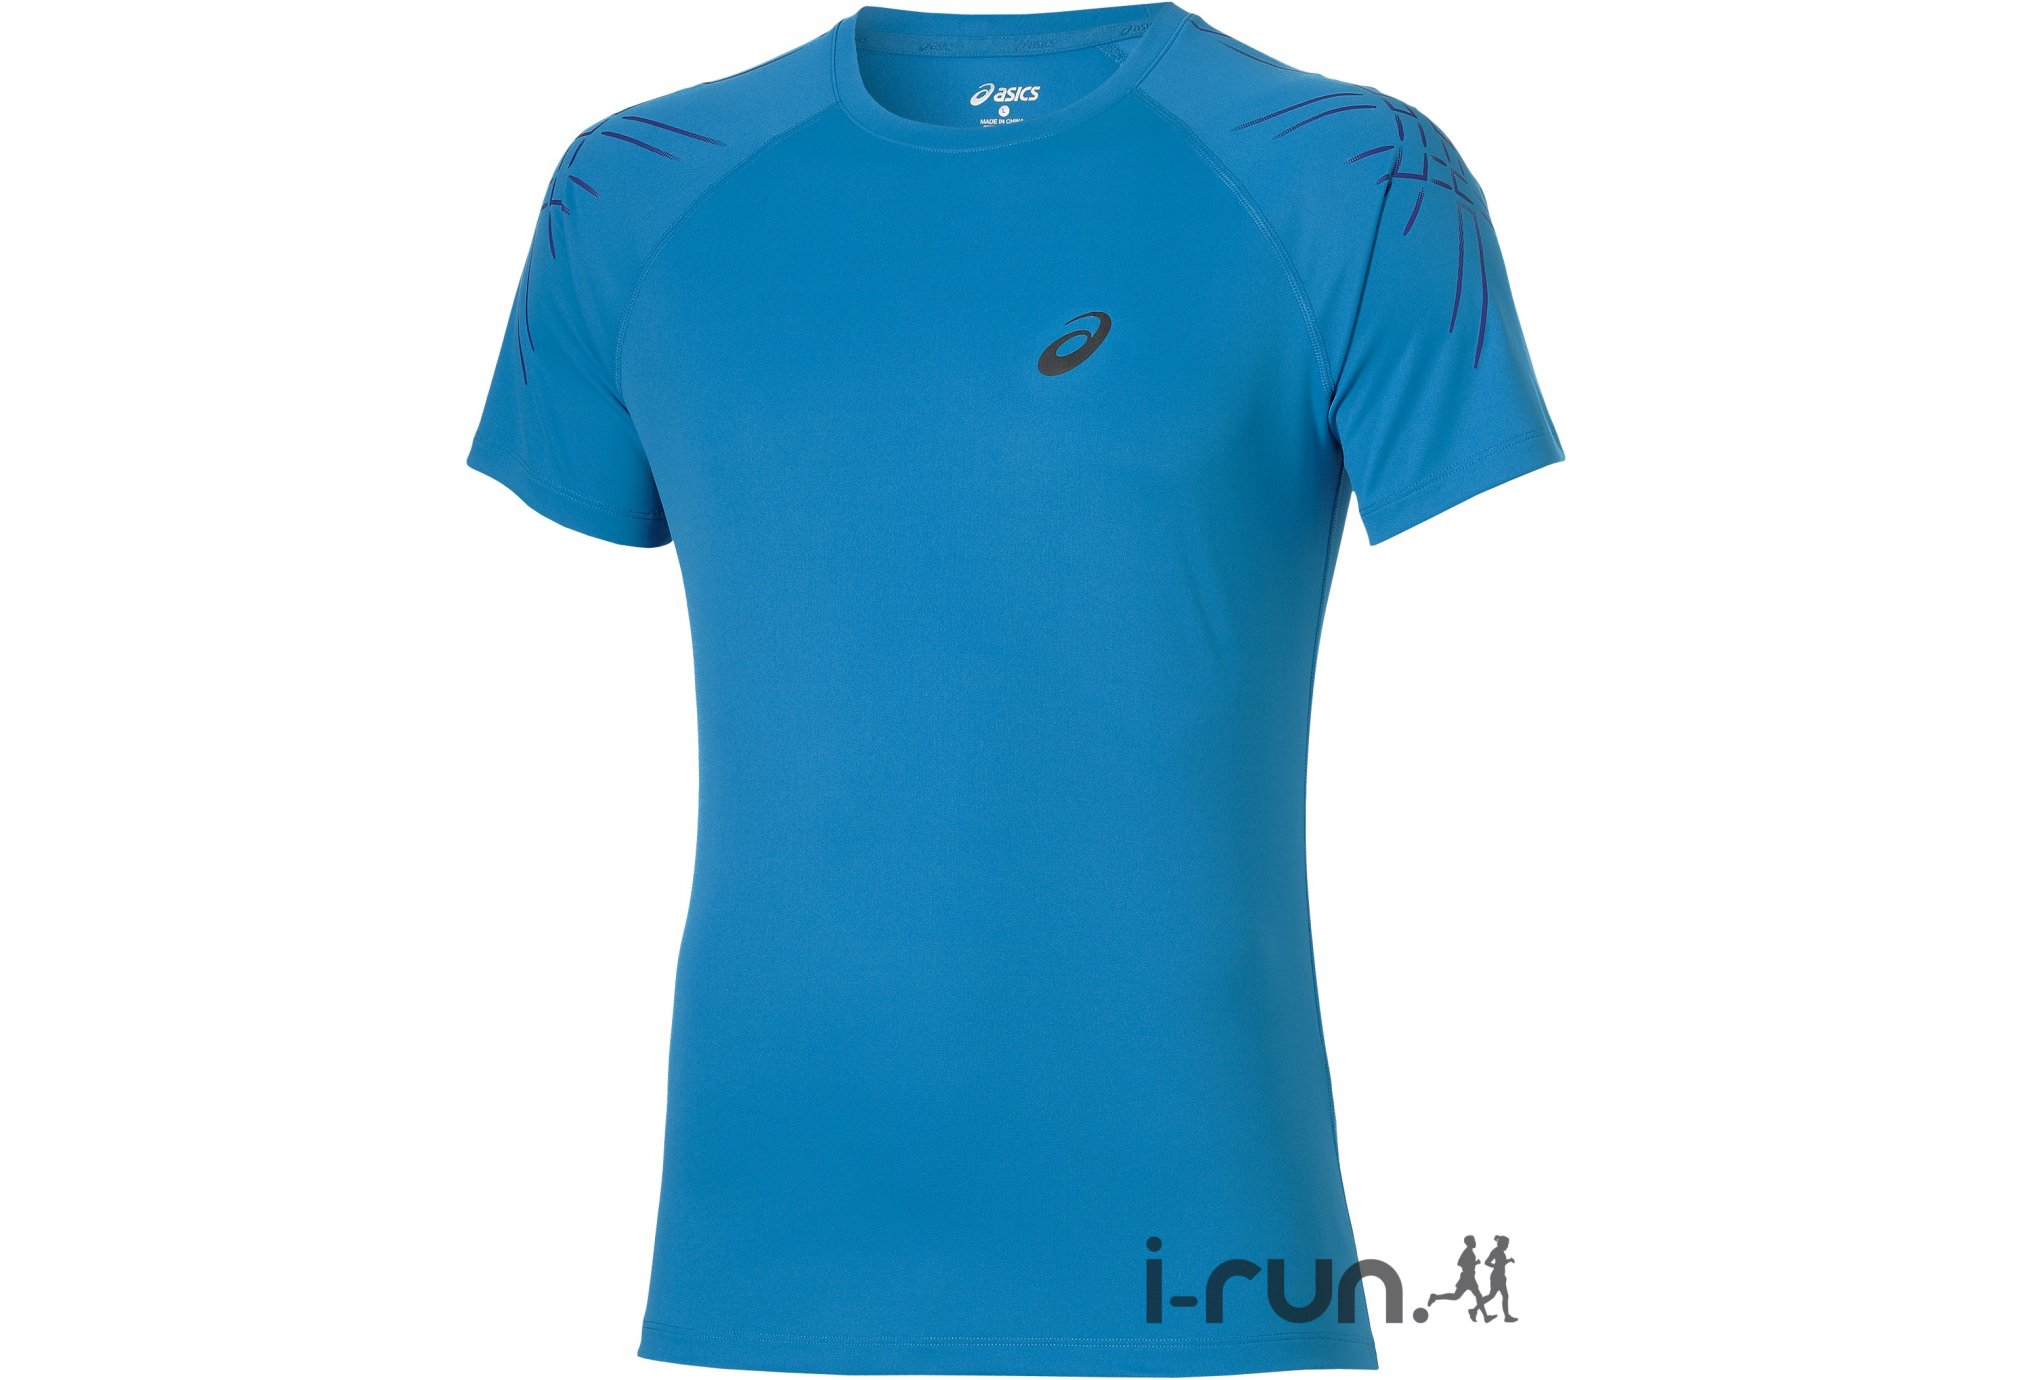 Asics Tee-shirt Stripe Top M vêtement running homme